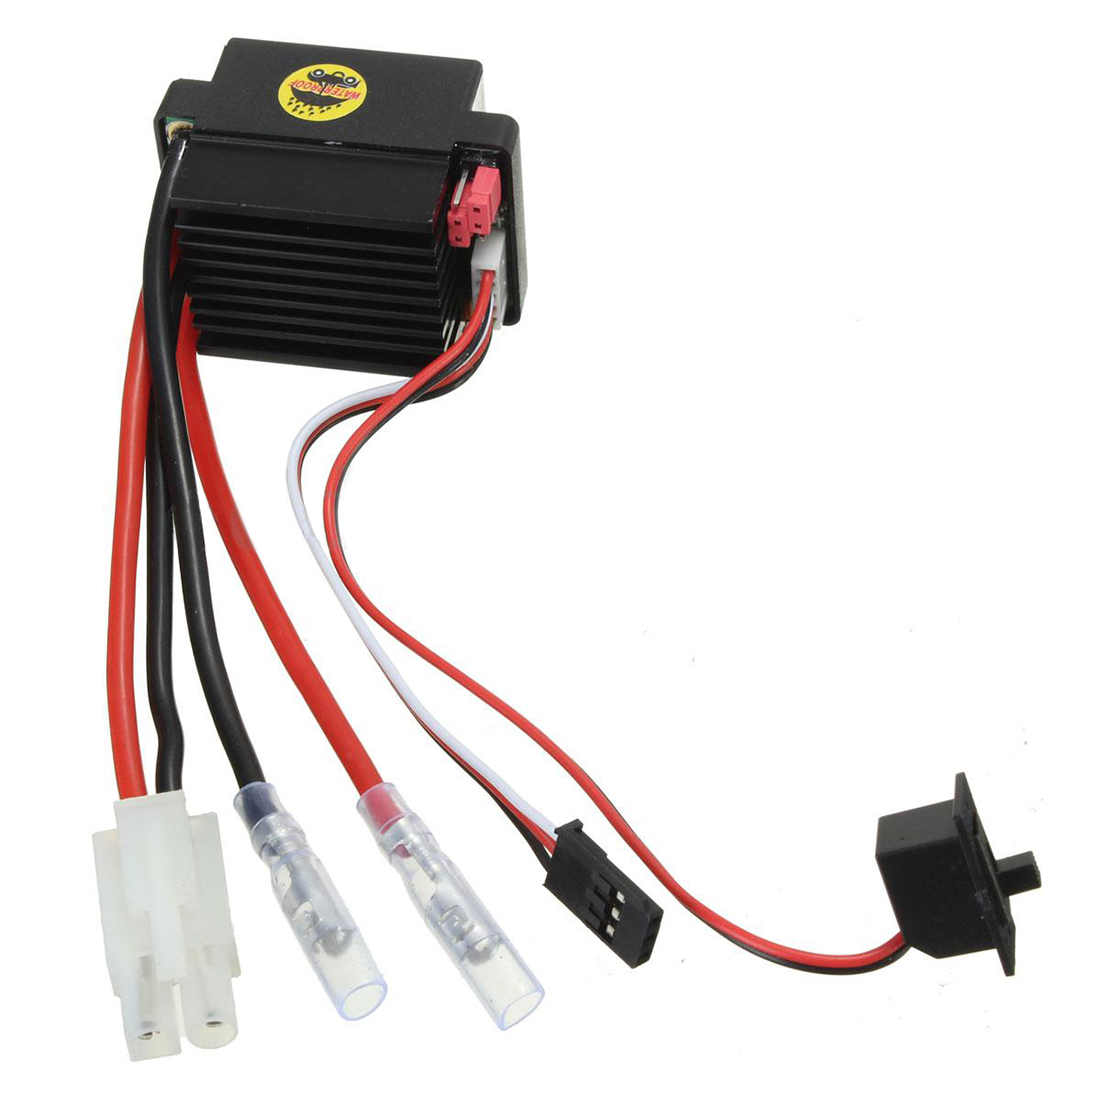 MYLB-HSP 320A Brushed Brush Motor Speed Controller ESC F. 1/10 1/12 RC Truck Car Boat 1pcs 320a brushed esc speed controller w reverse for 1 8 1 10 rc flat off road monster truck truck car boat dropship